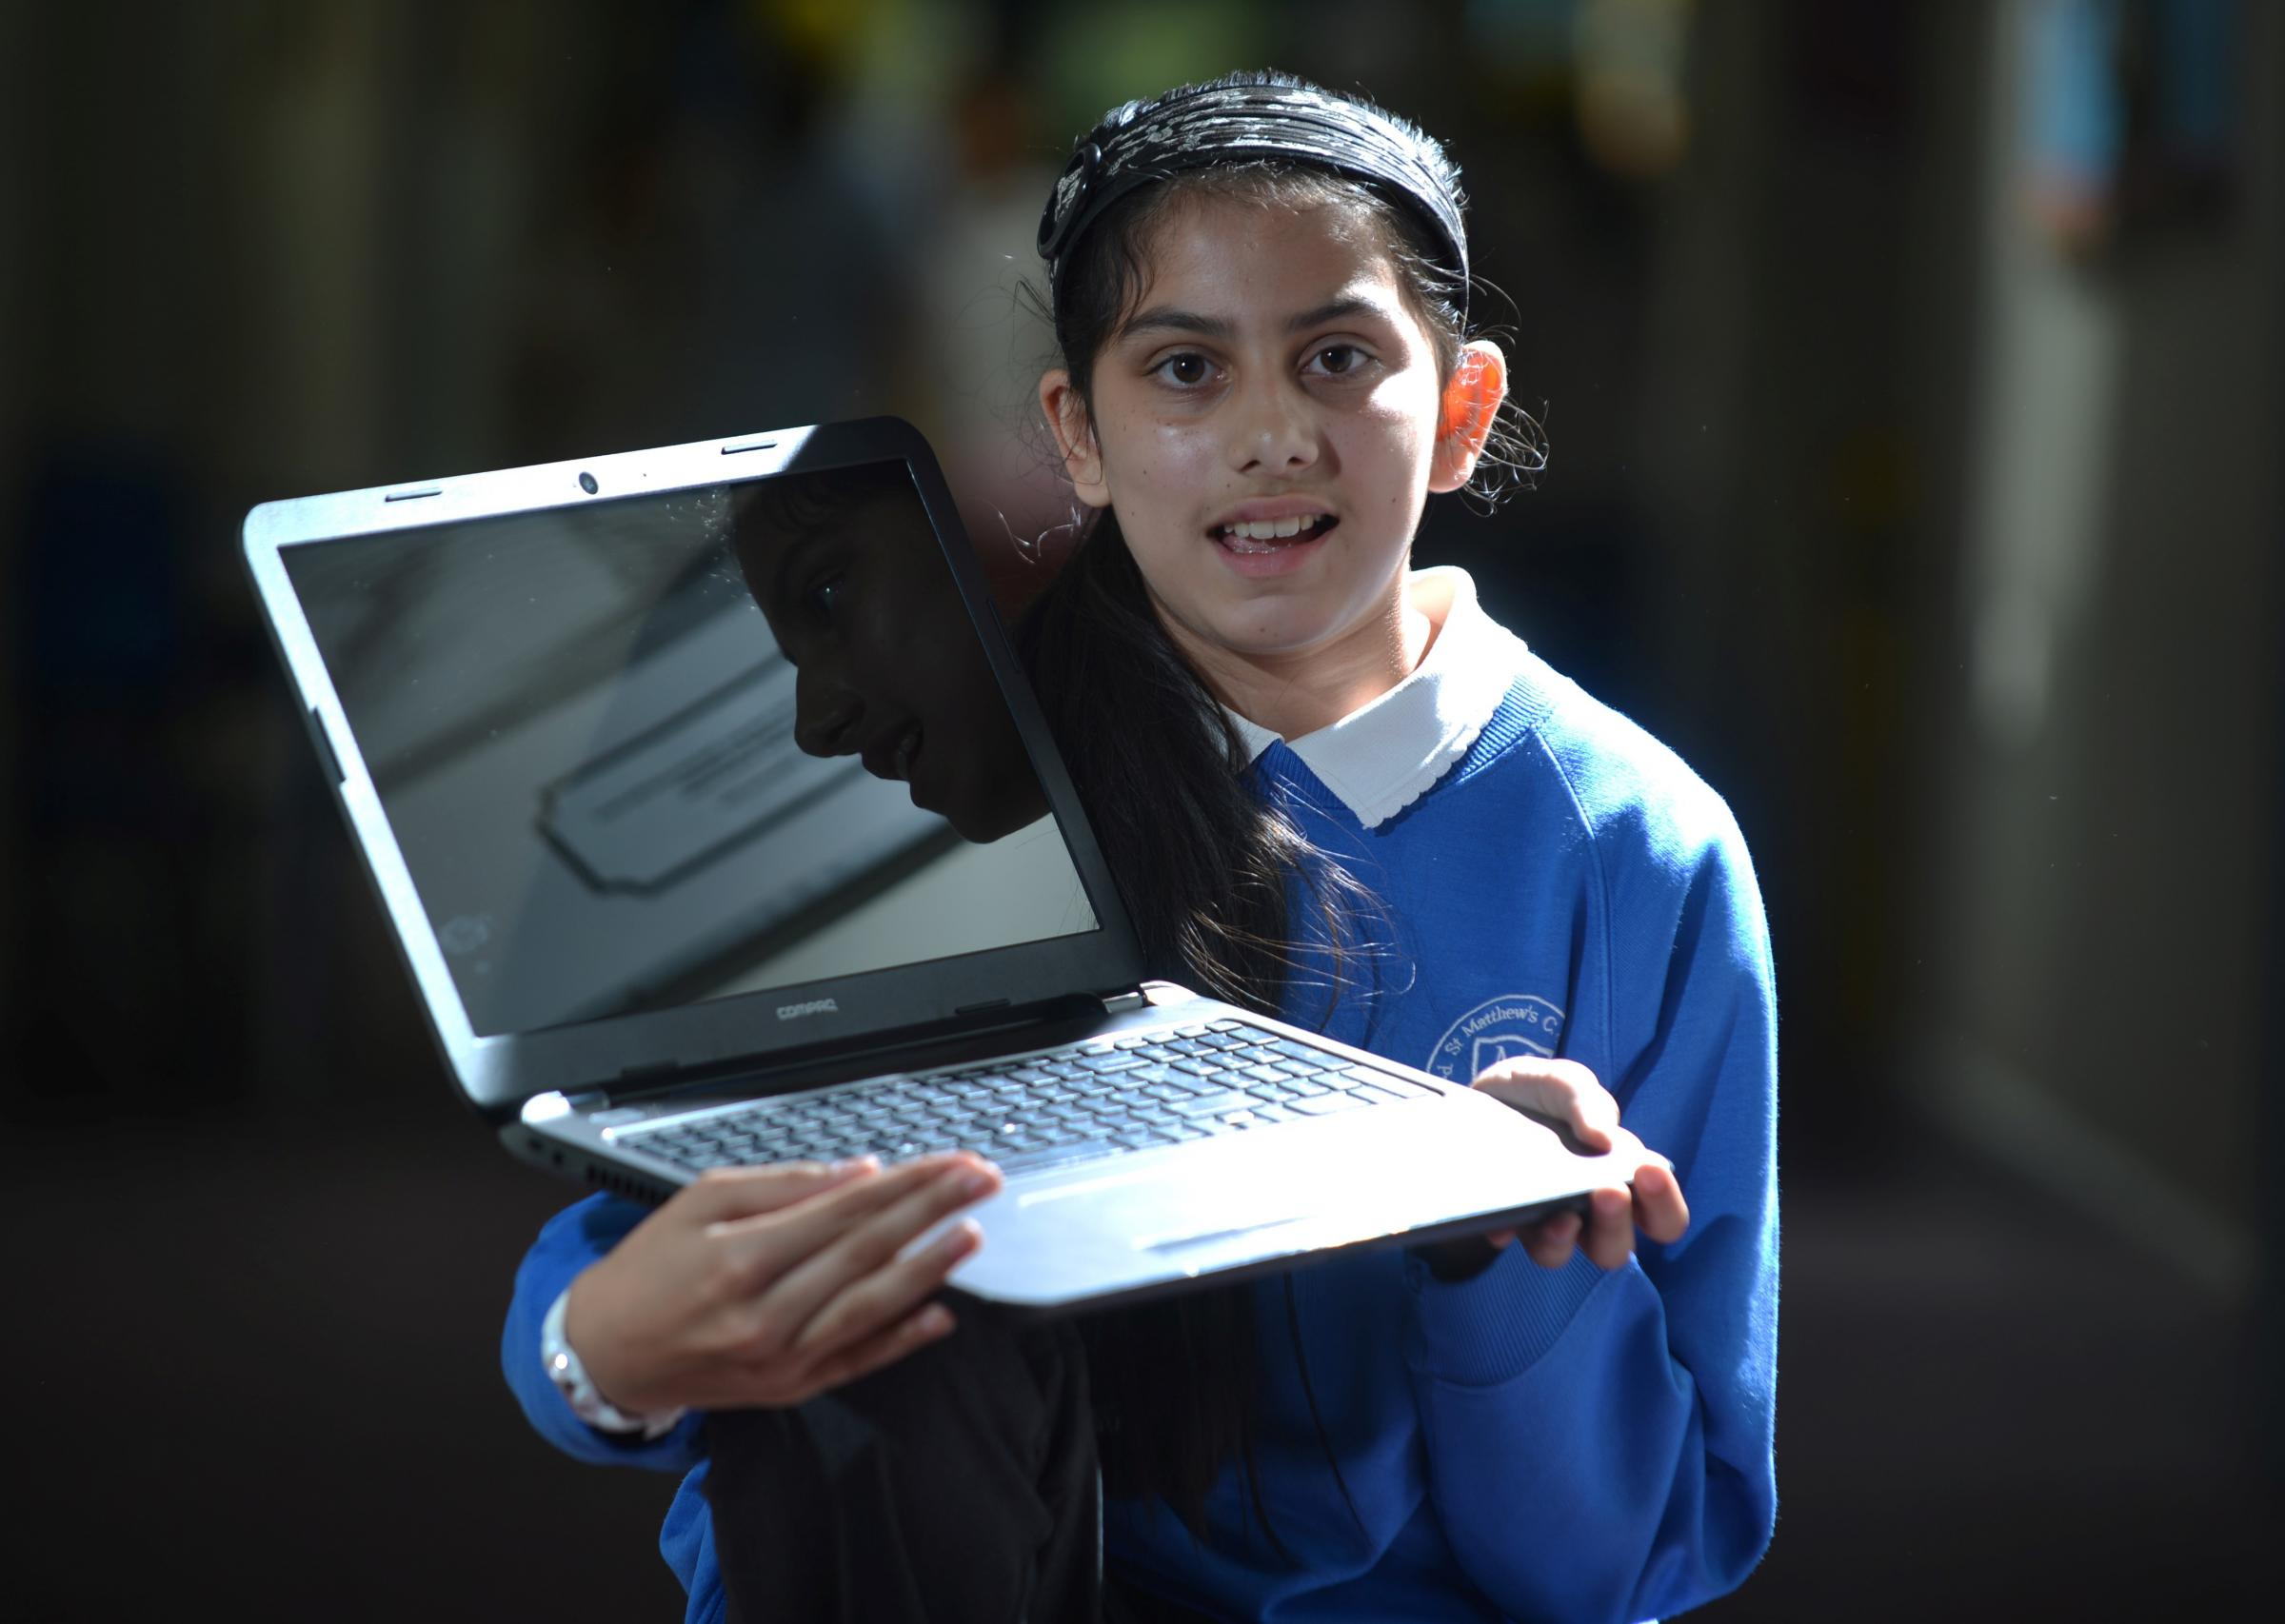 Laptop prize for pupil's perfect attendance